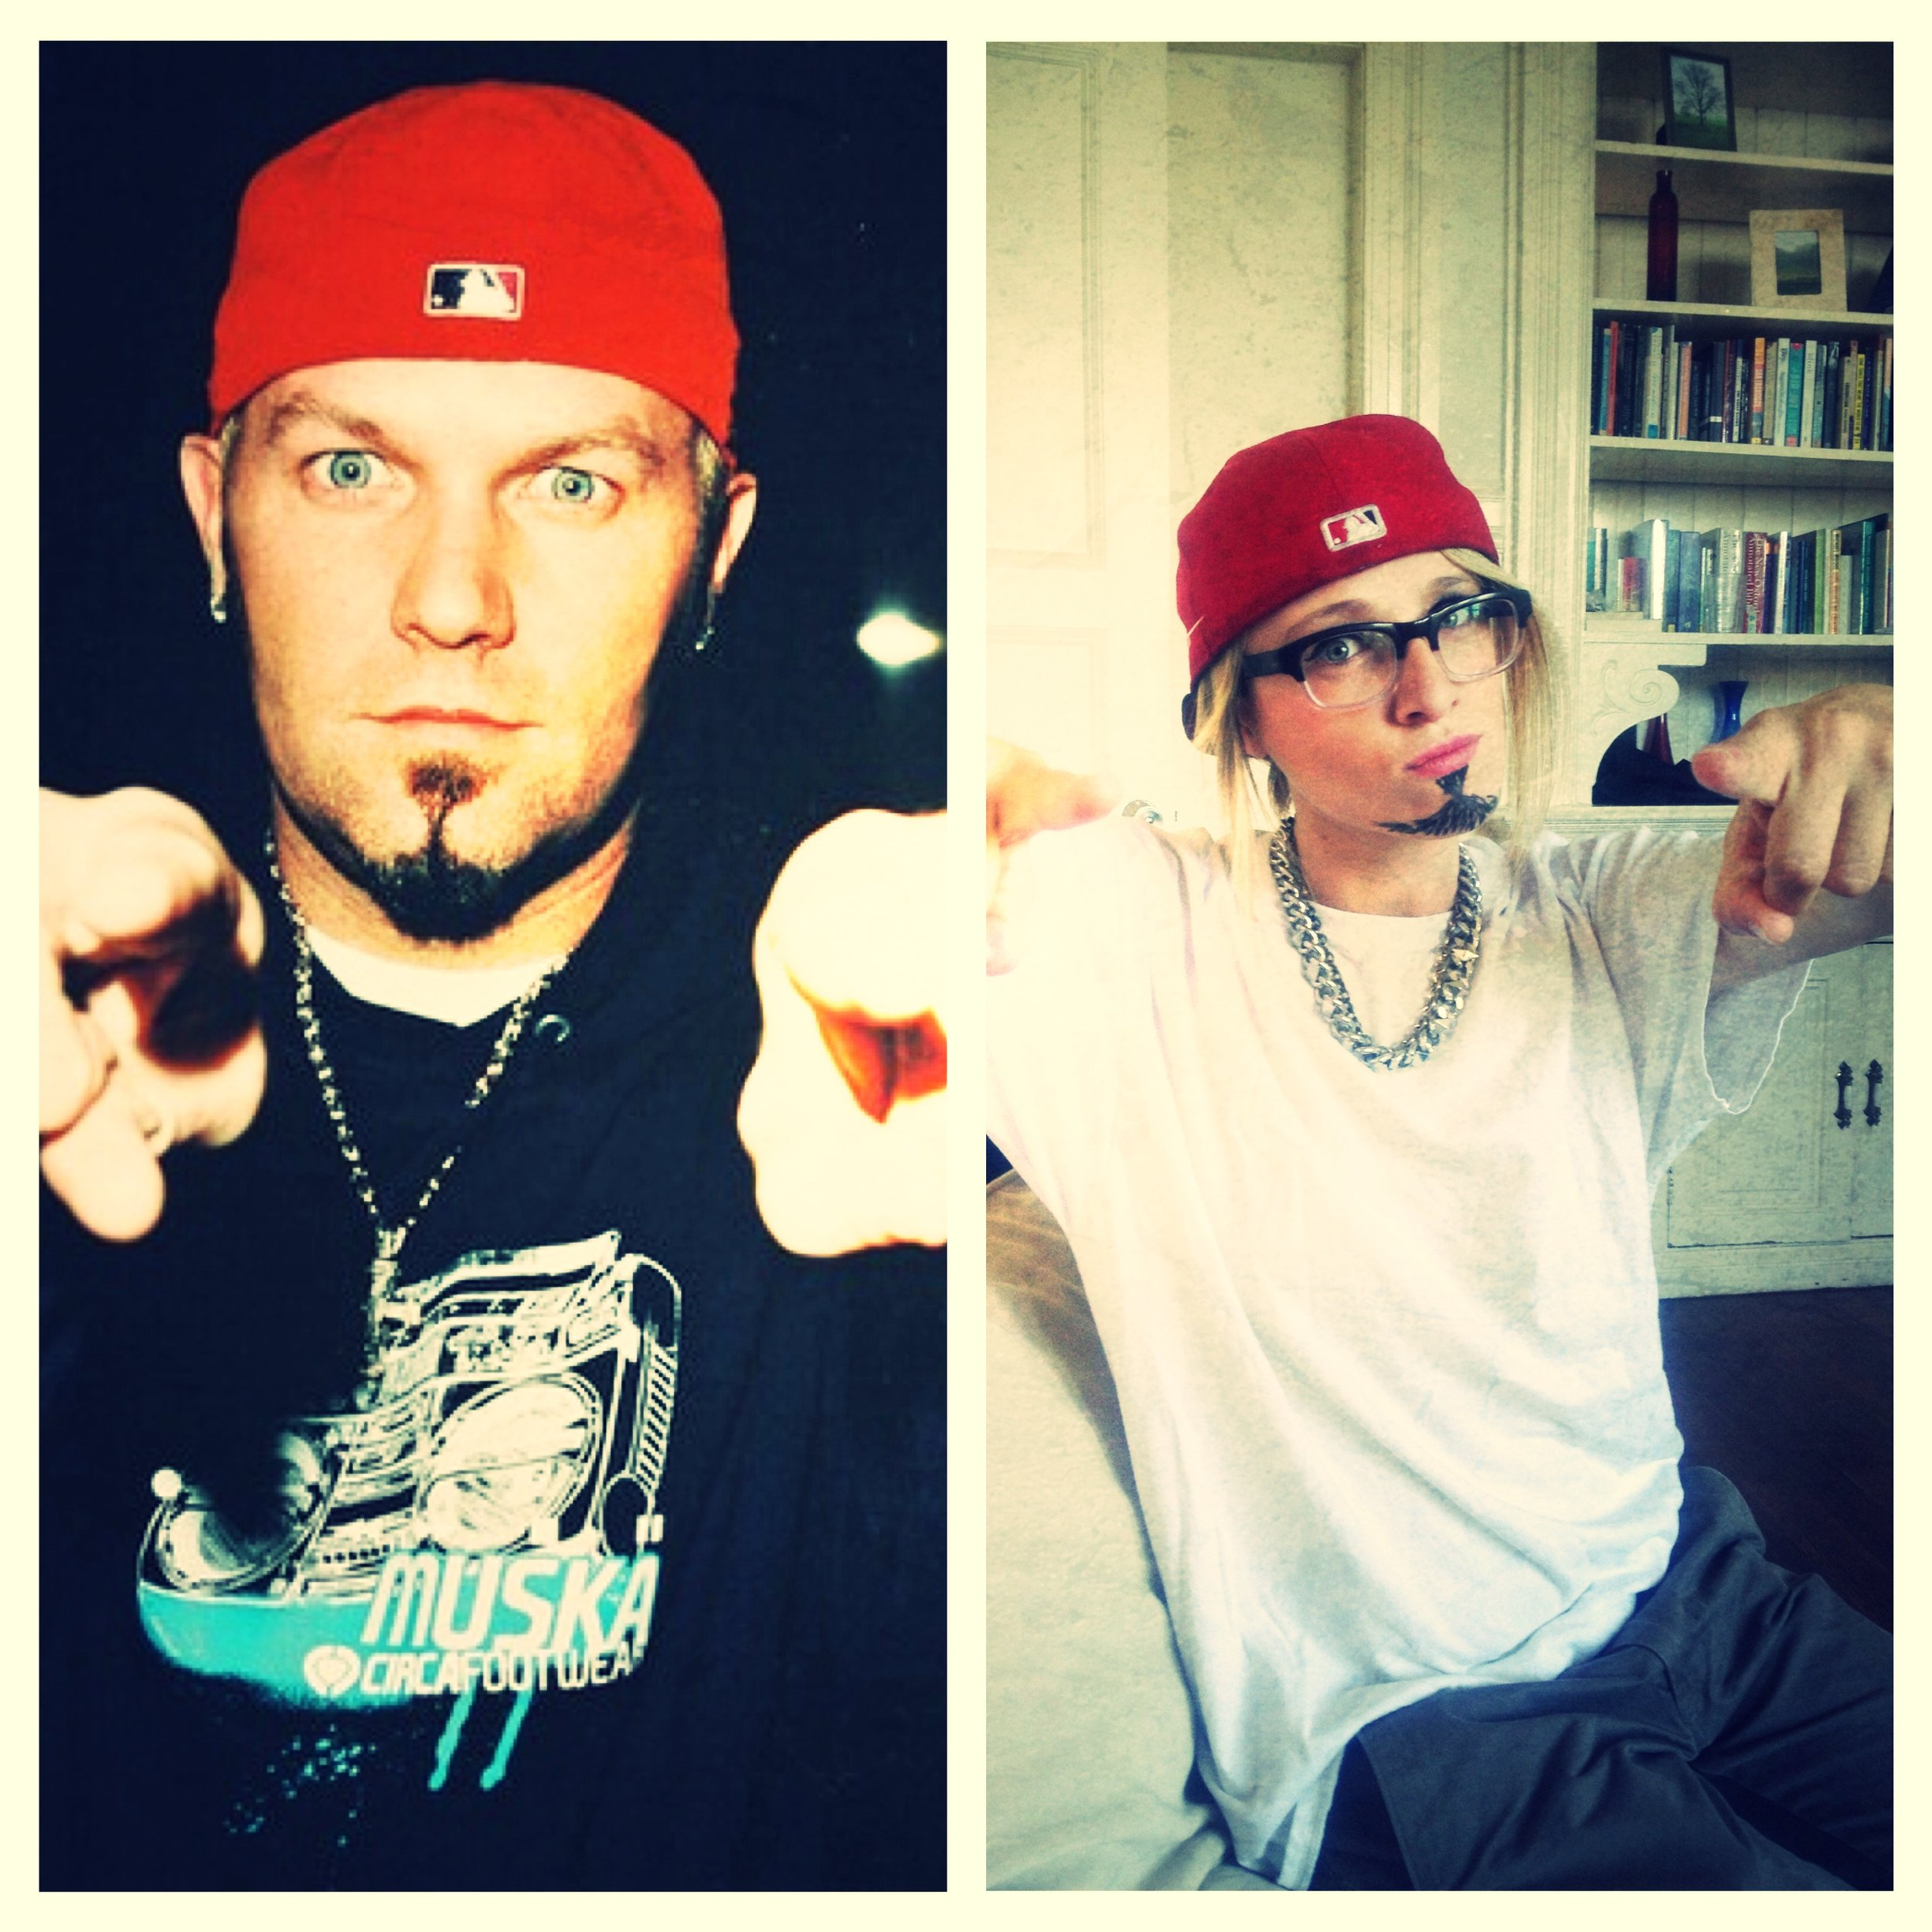 And of course, my Bay to Breakers costume...Fred Durst, anyone?